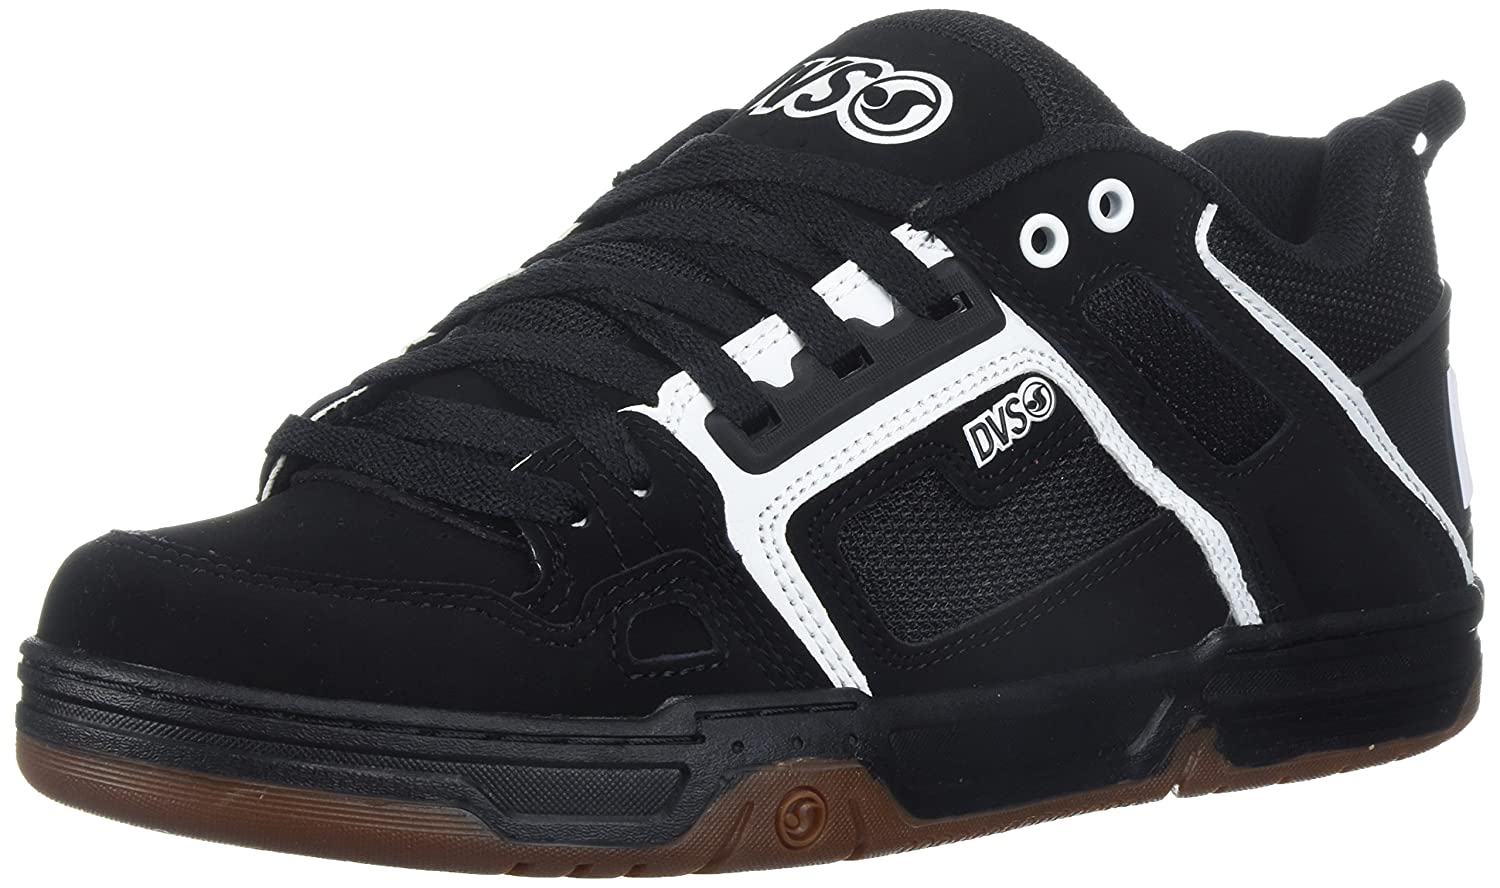 DVS Men's Comanche Skate Shoe 10.5 M US|Black/White Gum Nubuck